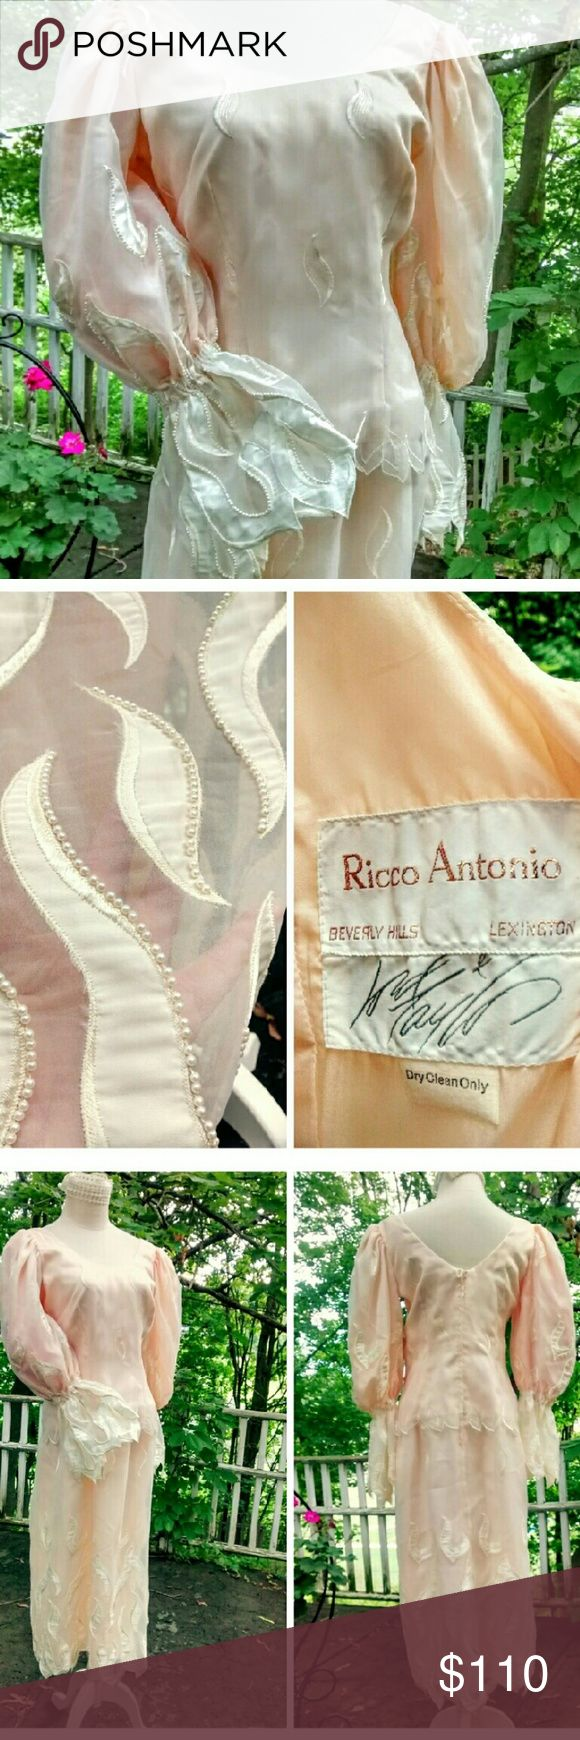 Vintage Ricco Antonio Beverly Hills Couture Dress Most romantic sleeves, executed perfectly in silk, satin and pearls..puffed upper sleeves end below elbows + then flare out to outrageous sheer cuffs.. dress is fully lined. 1990's purchase from Lord + Taylor. NEVER WORN!! No browning or other age/vintage issues. Rear metal zipper. Hand applied pearled design is on front + back of dress. Dropped waist w/scallop detail. mannequin is size 6-8 + it's way too big. This dress is an 10-12. Perfect…